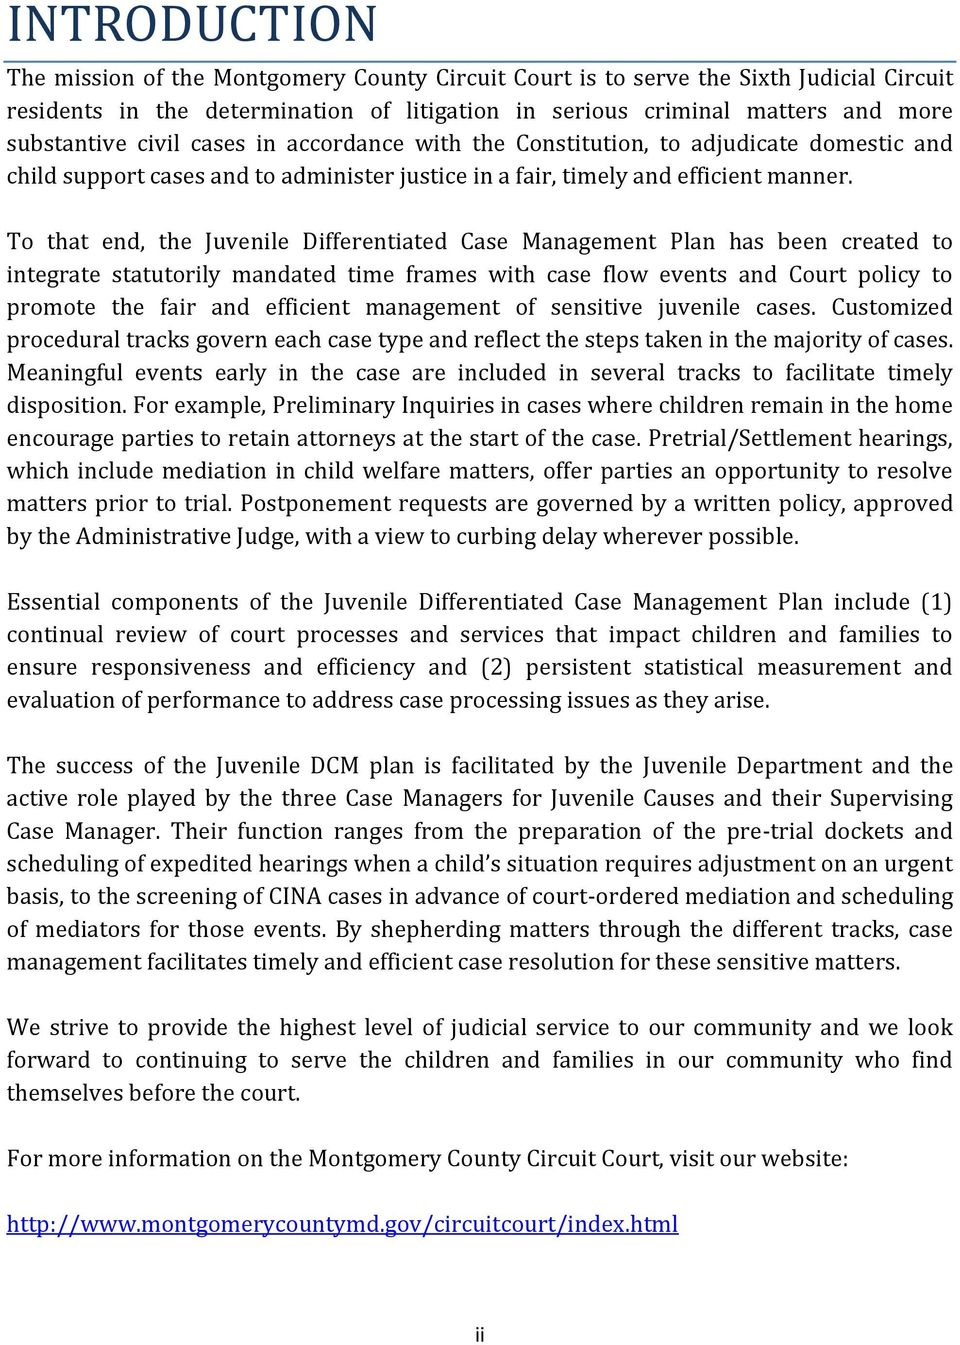 To that end, the Juvenile Differentiated Case Management Plan has been created to integrate statutorily mandated time frames with case flow events and Court policy to promote the fair and efficient